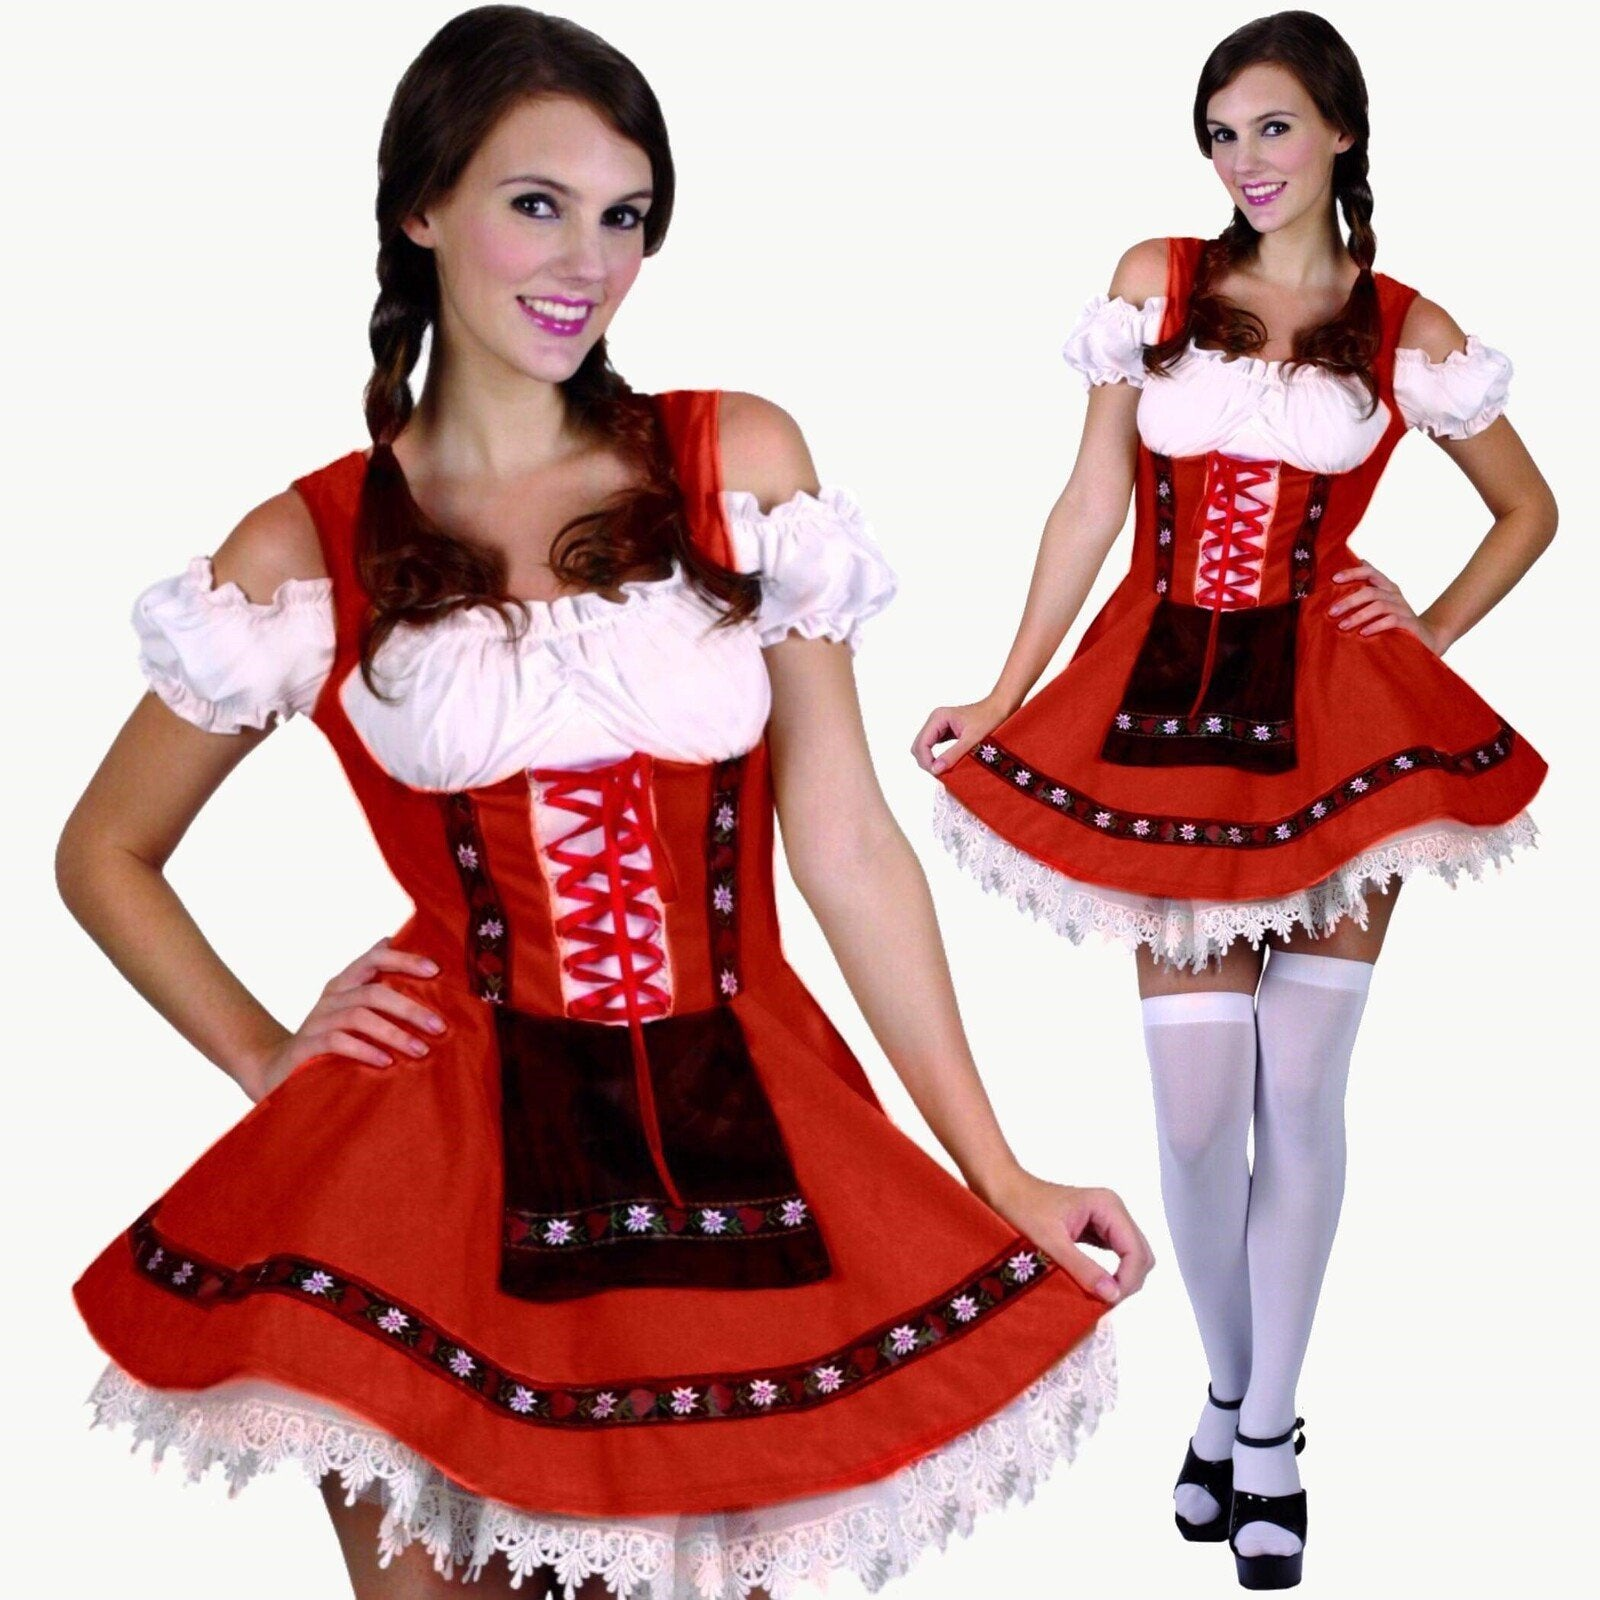 Oktoberfest Sweet Hannah Dress - The Costume Company | Fancy Dress Costumes Hire and Purchase Brisbane and Australia